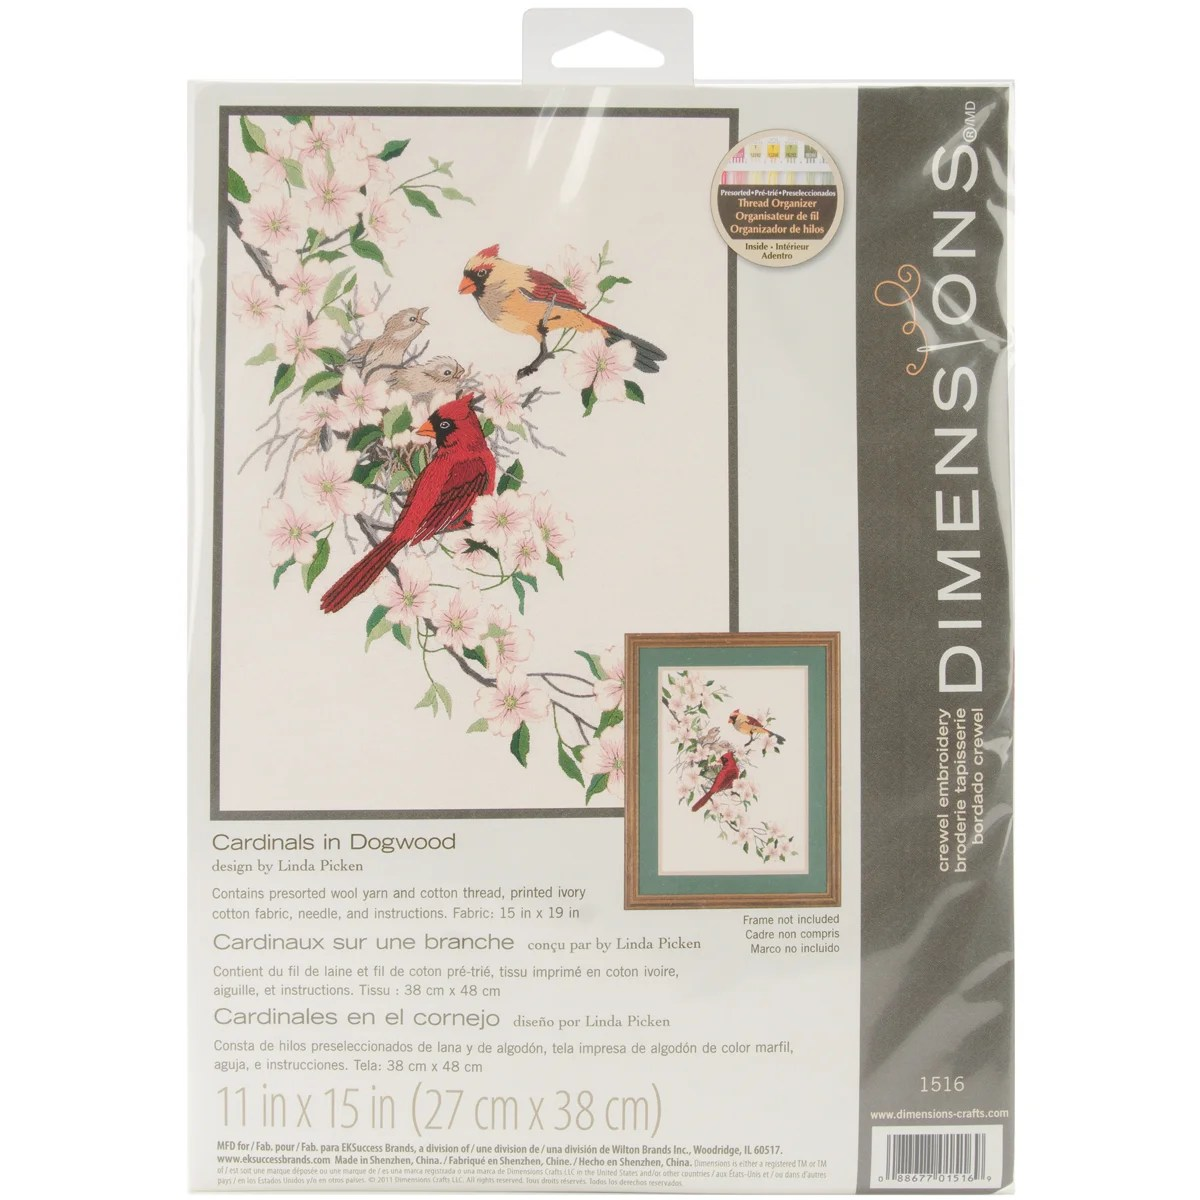 Tapisserie Om Cardinals In Dogwood Crewel Embroidery Kit